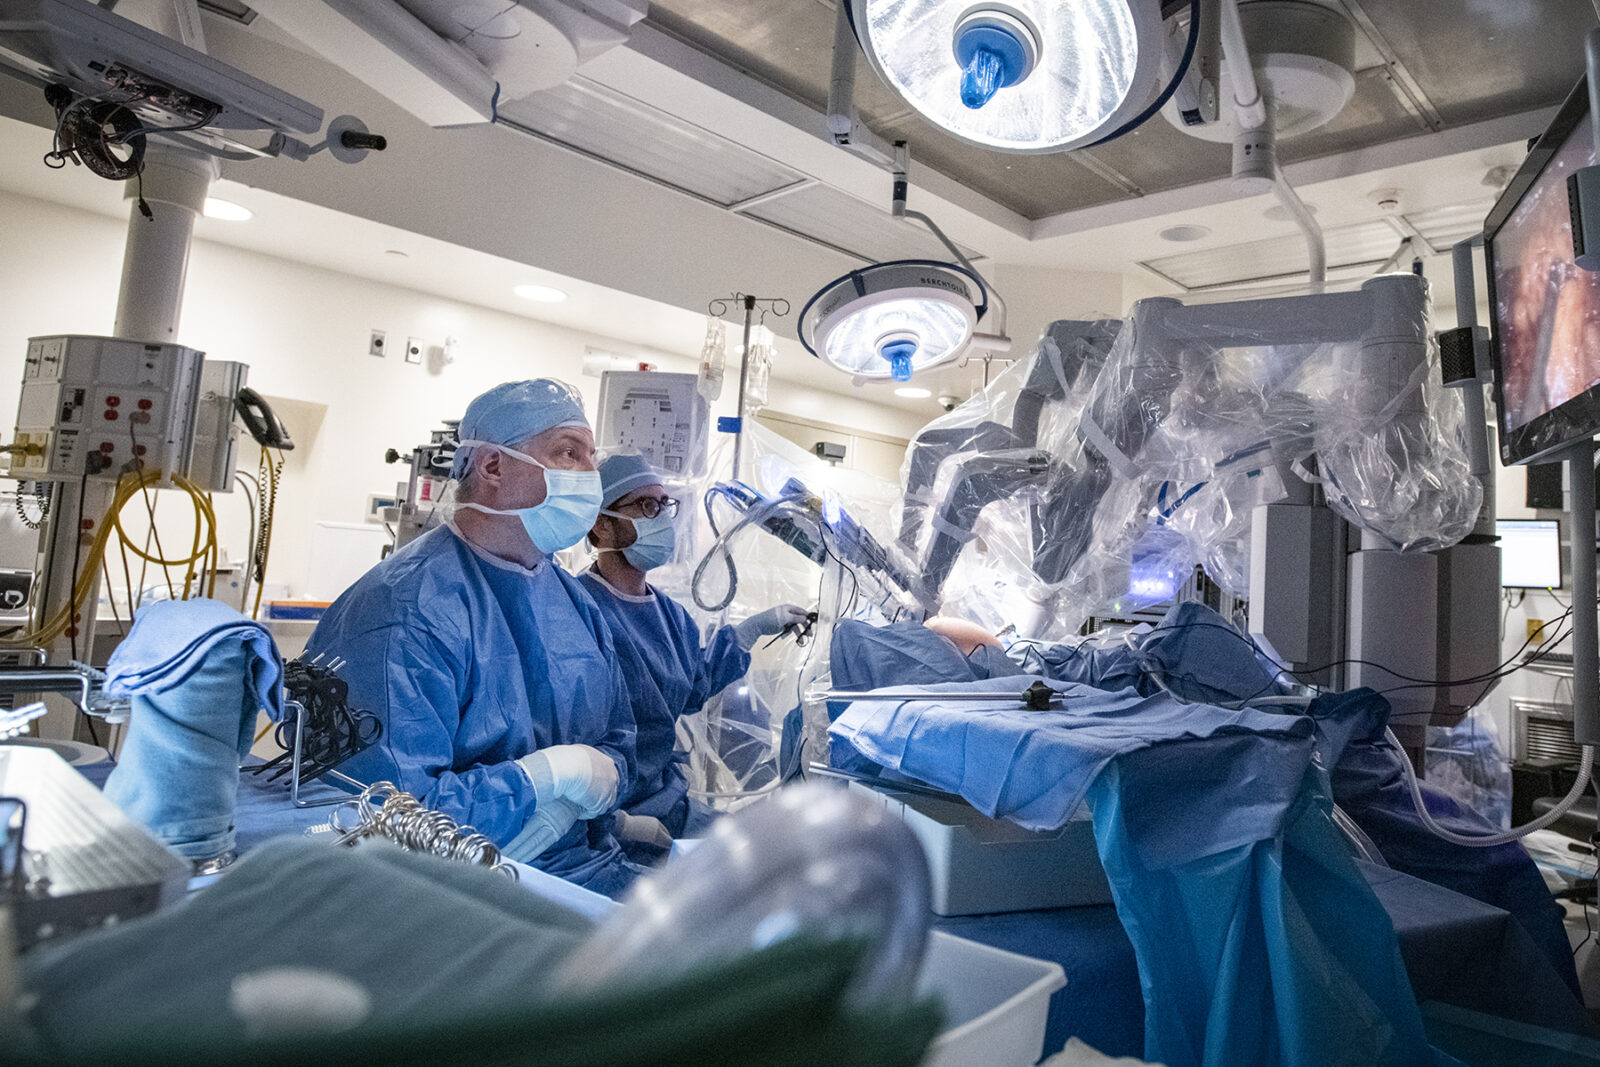 MAY 22 2019 - Dr. Sunil Patel at team work in the operating room at the KGH site and perform colorectal surgery using the da Vinci Surgical System at Kingston Health Sciences Centre, in Kingston Ontario, Canada. Photo: Matthew Manor/KHSC Copyright © 2019